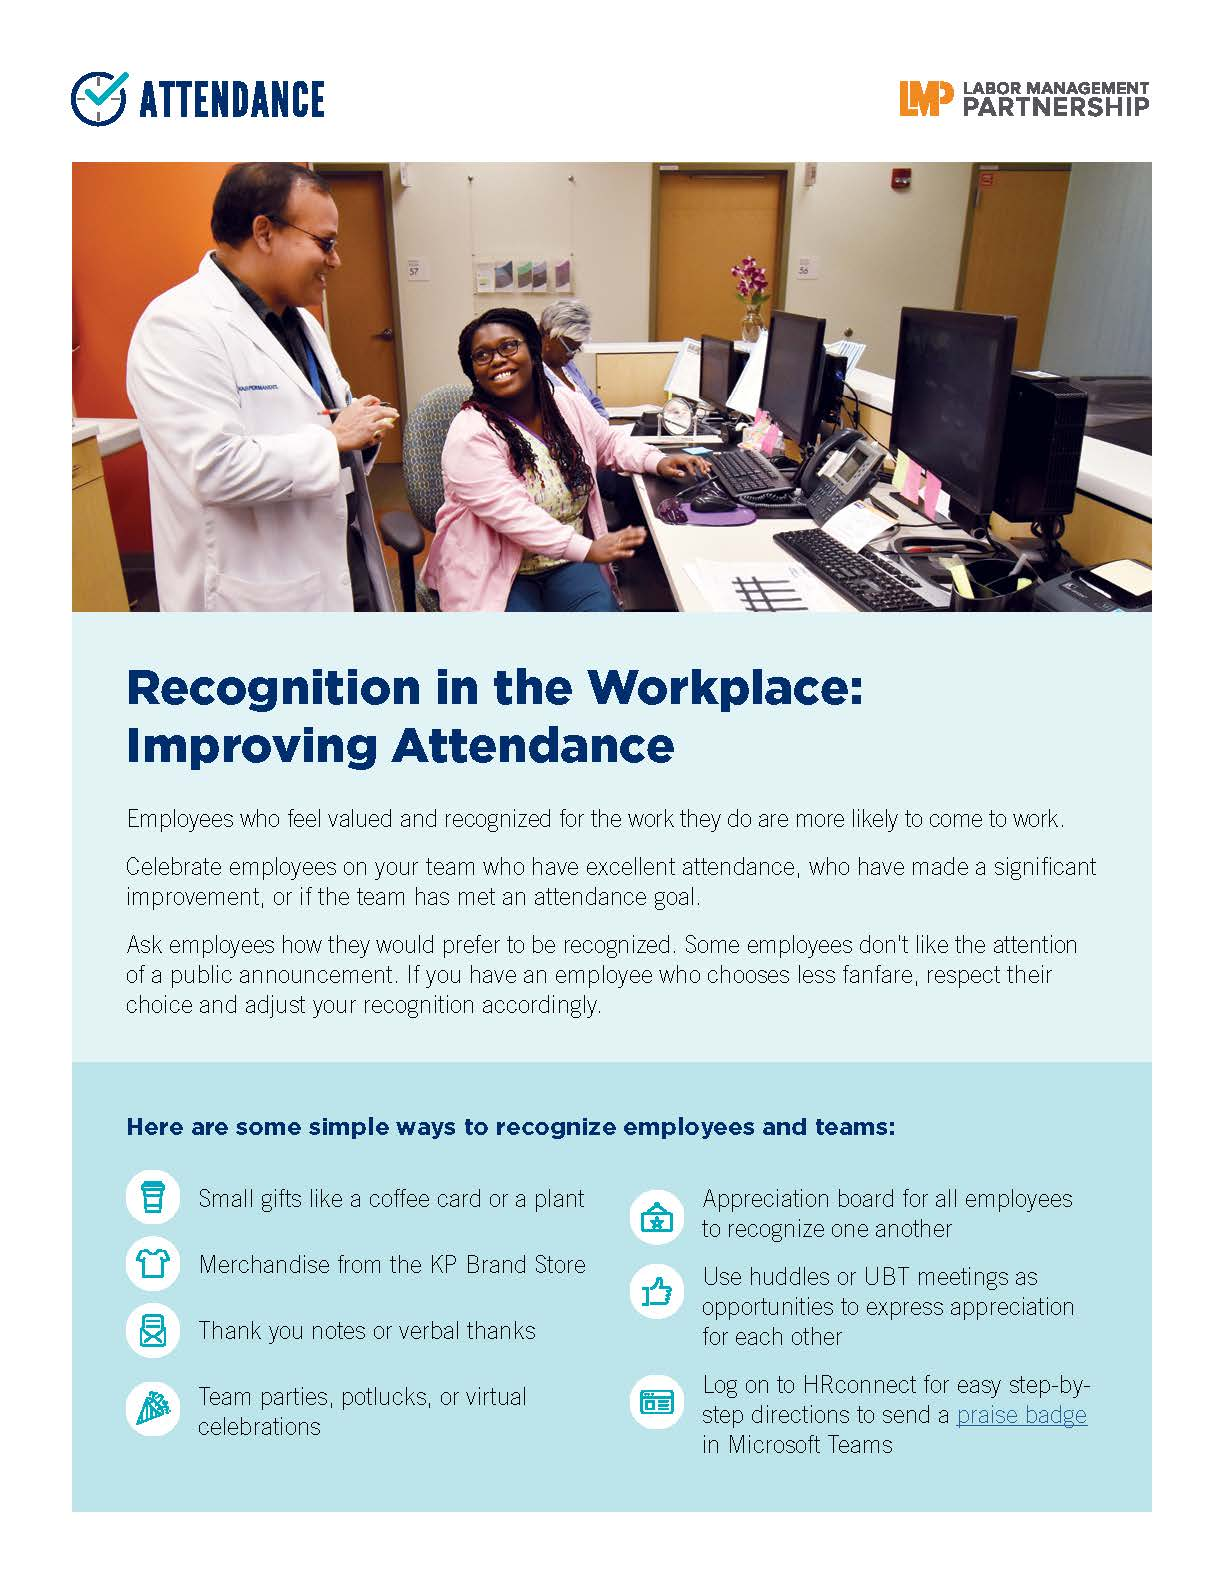 flier with a photo of 2 health care workers at a bank of computers, smiling at each other